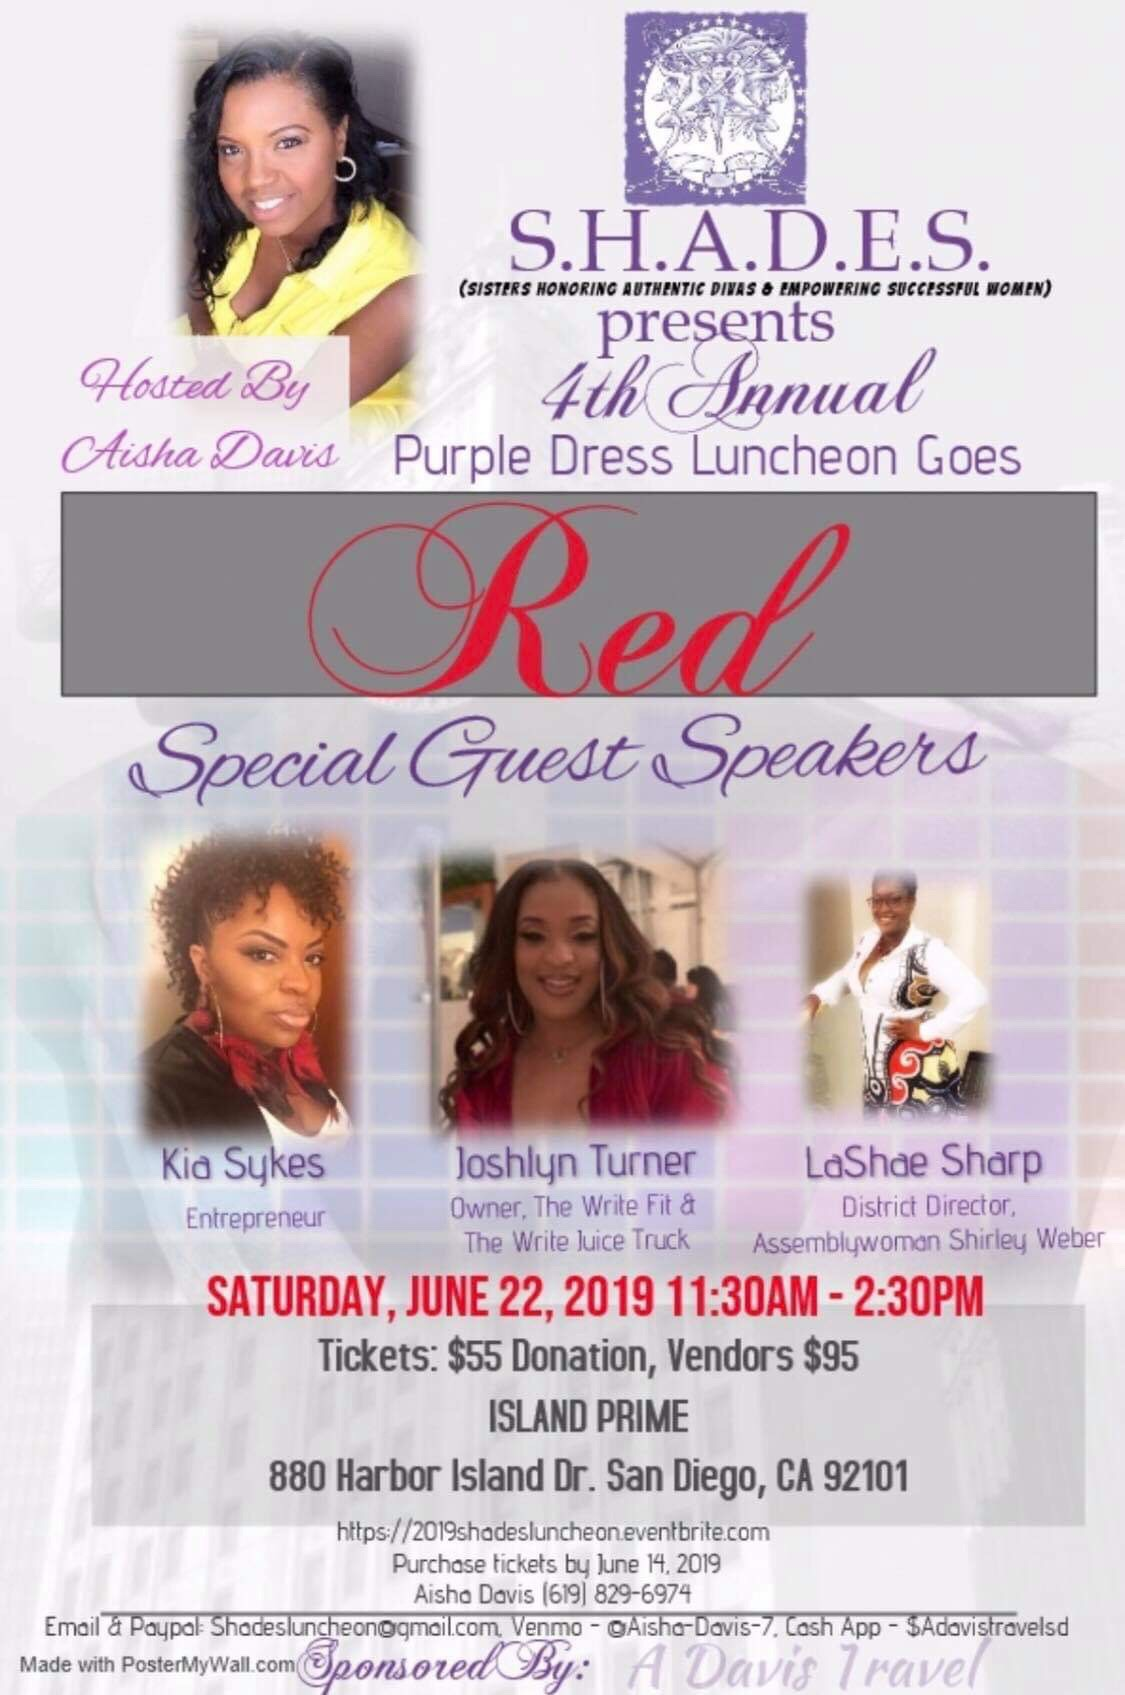 The Purple Dress Luncheon: Goes RED! @ Island Prime